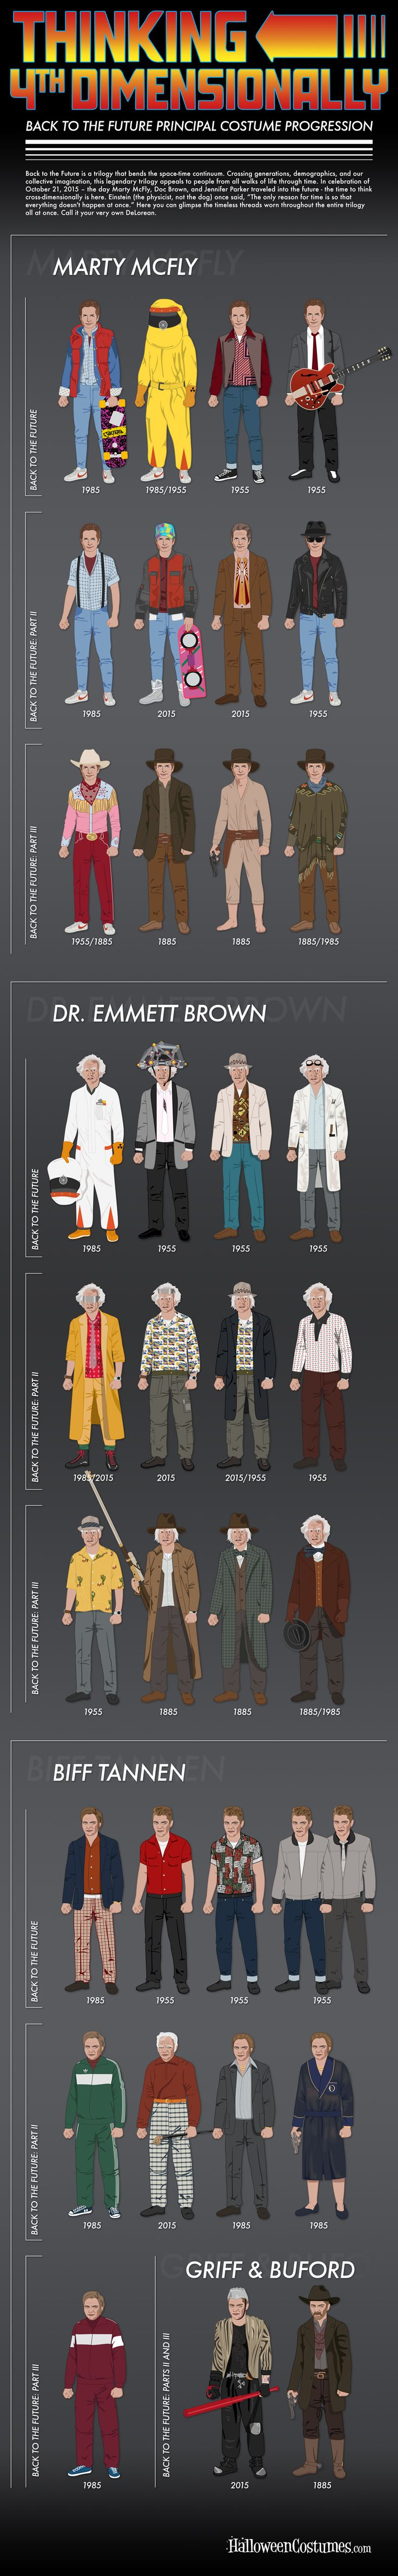 Back to the Future Costumes Infographic